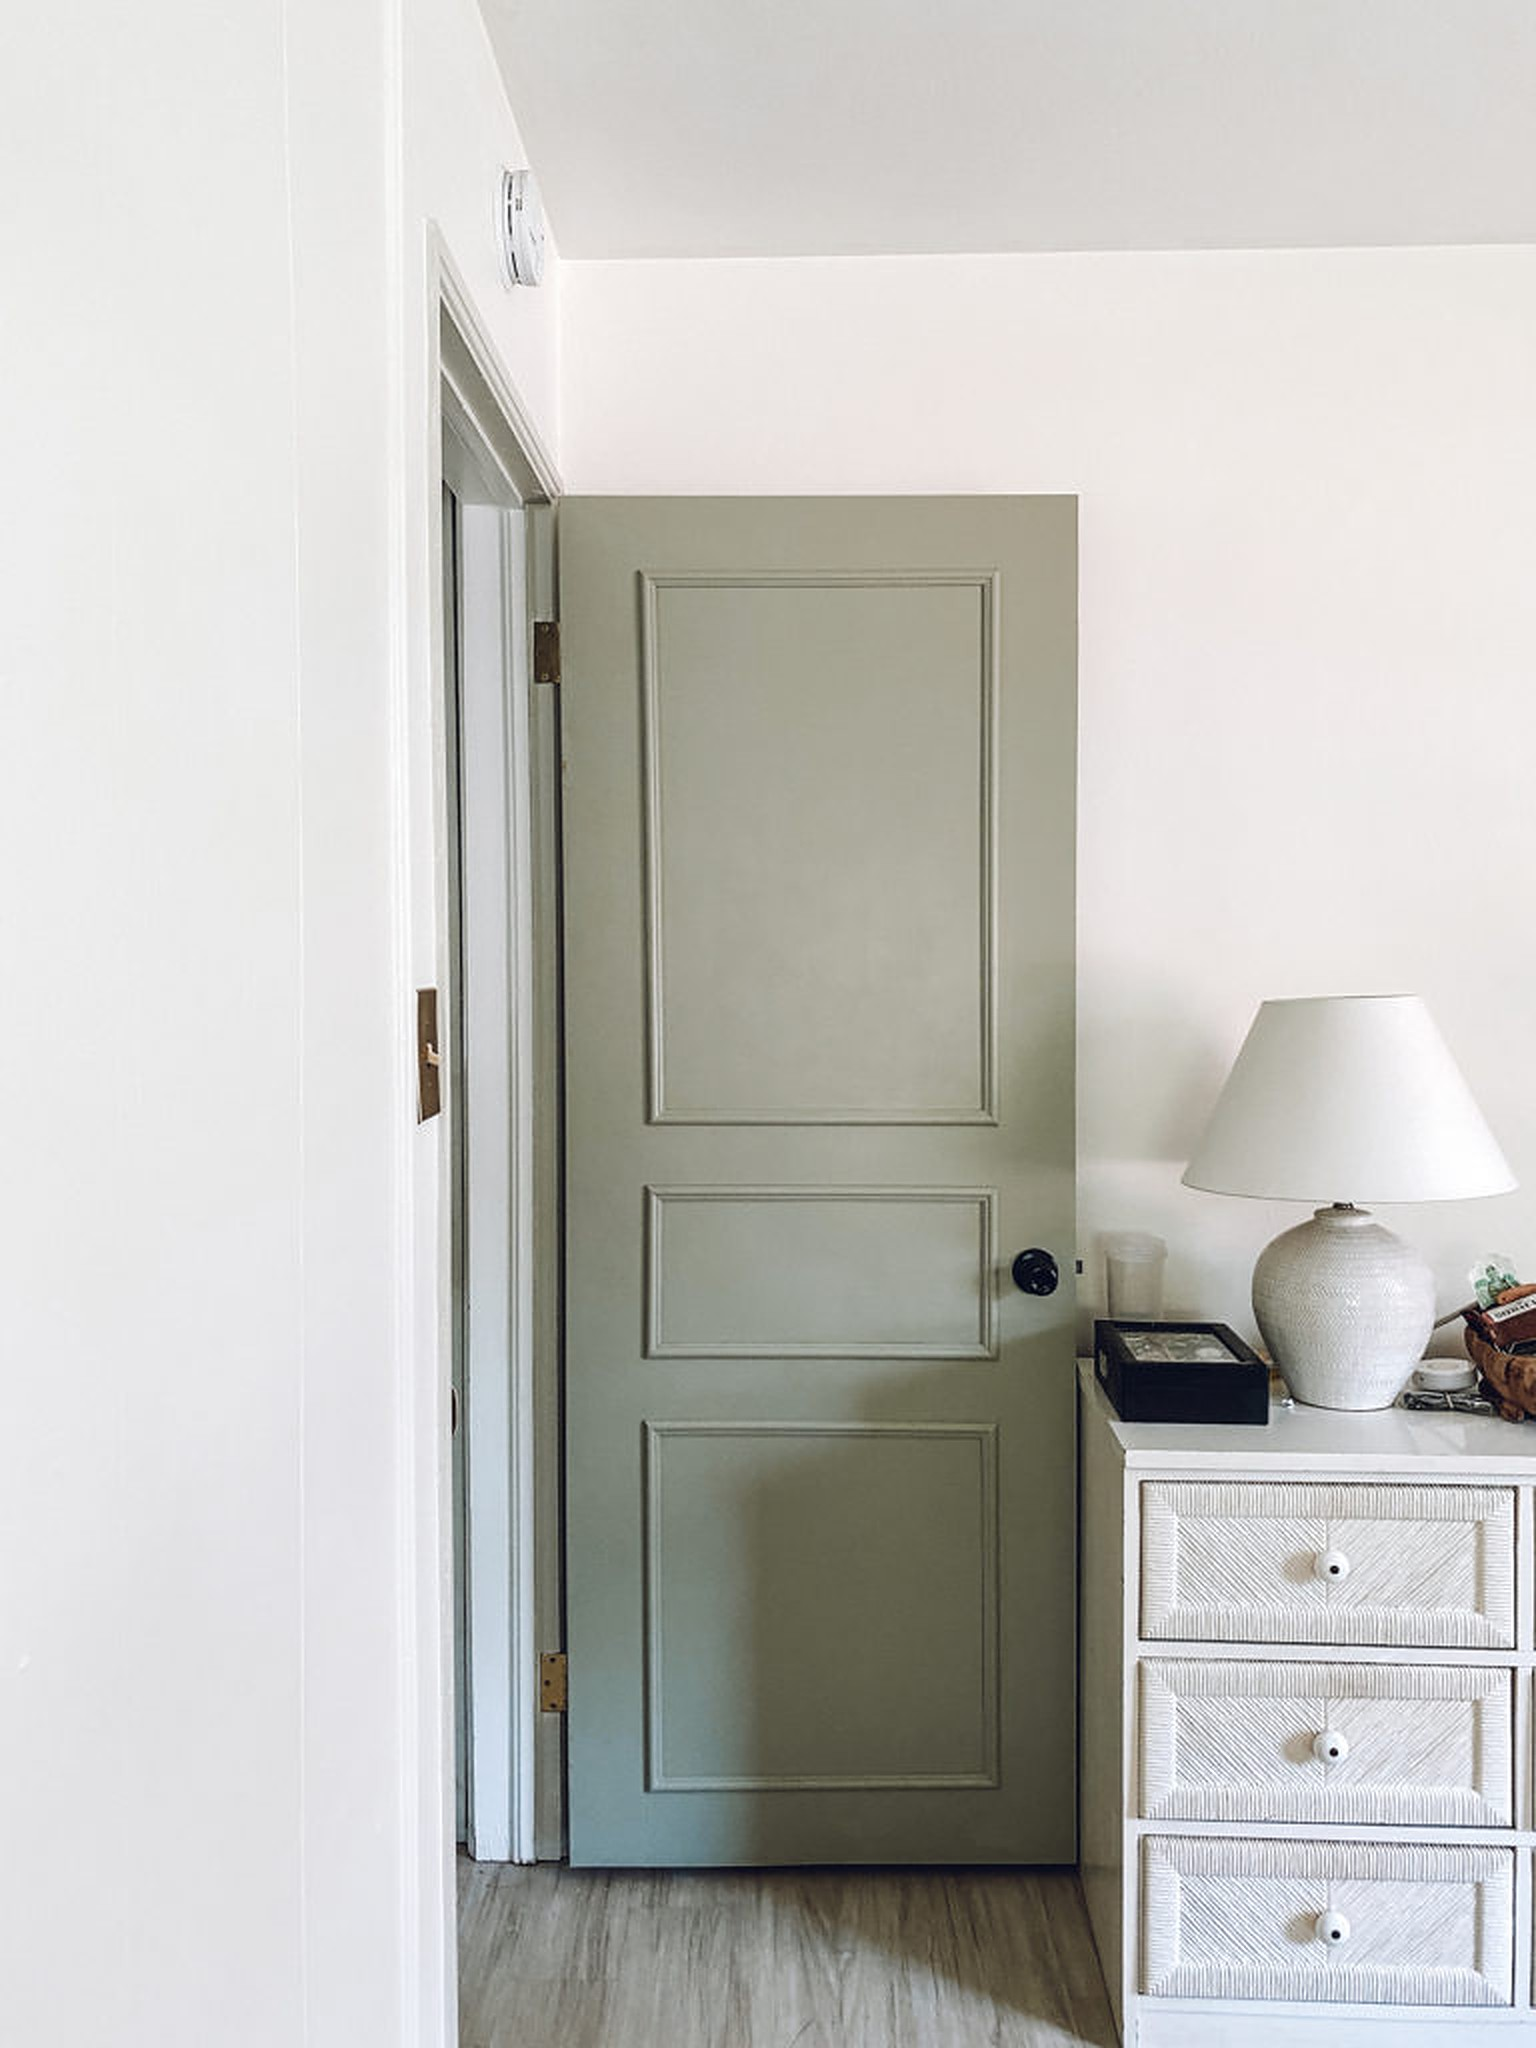 White lamp on white cabinet and an open door